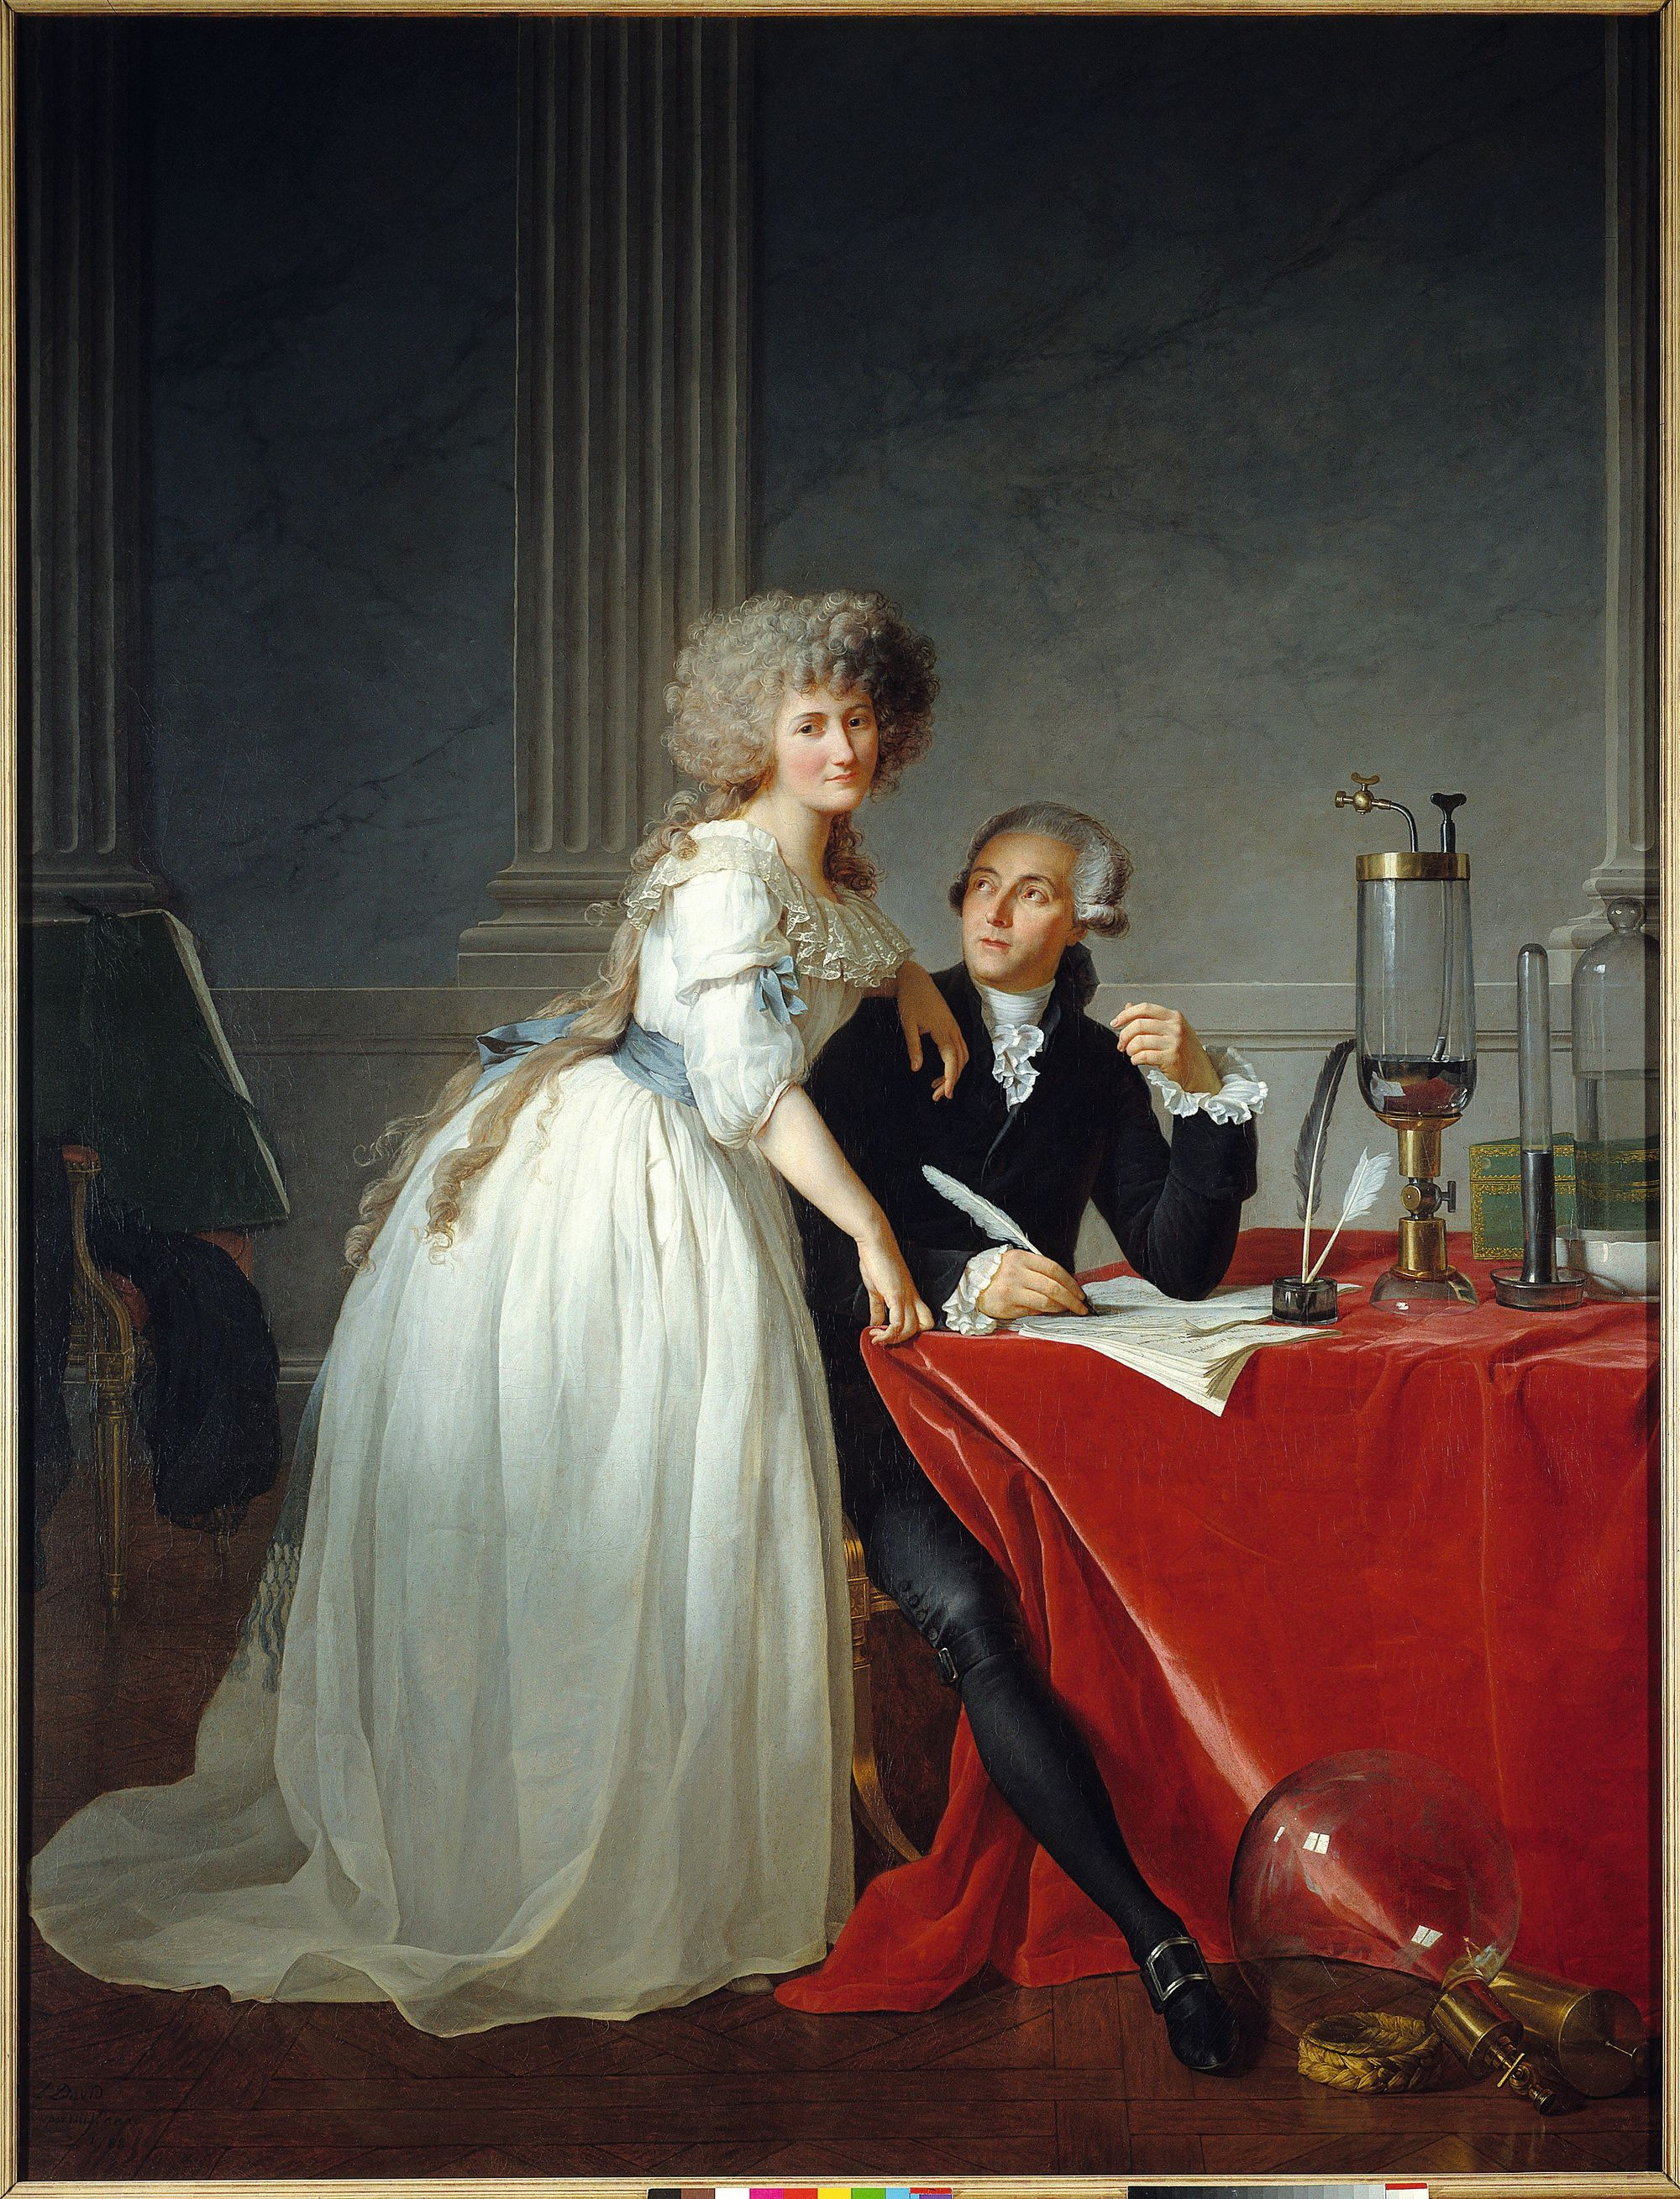 Jacques-Louis David, Portrait d'Antoine-Laurent et Marie-Anne Lavoisier, 1788, huile sur toile (détail), 259 x 195 cm, Metropolitan Museum of Art, New York.